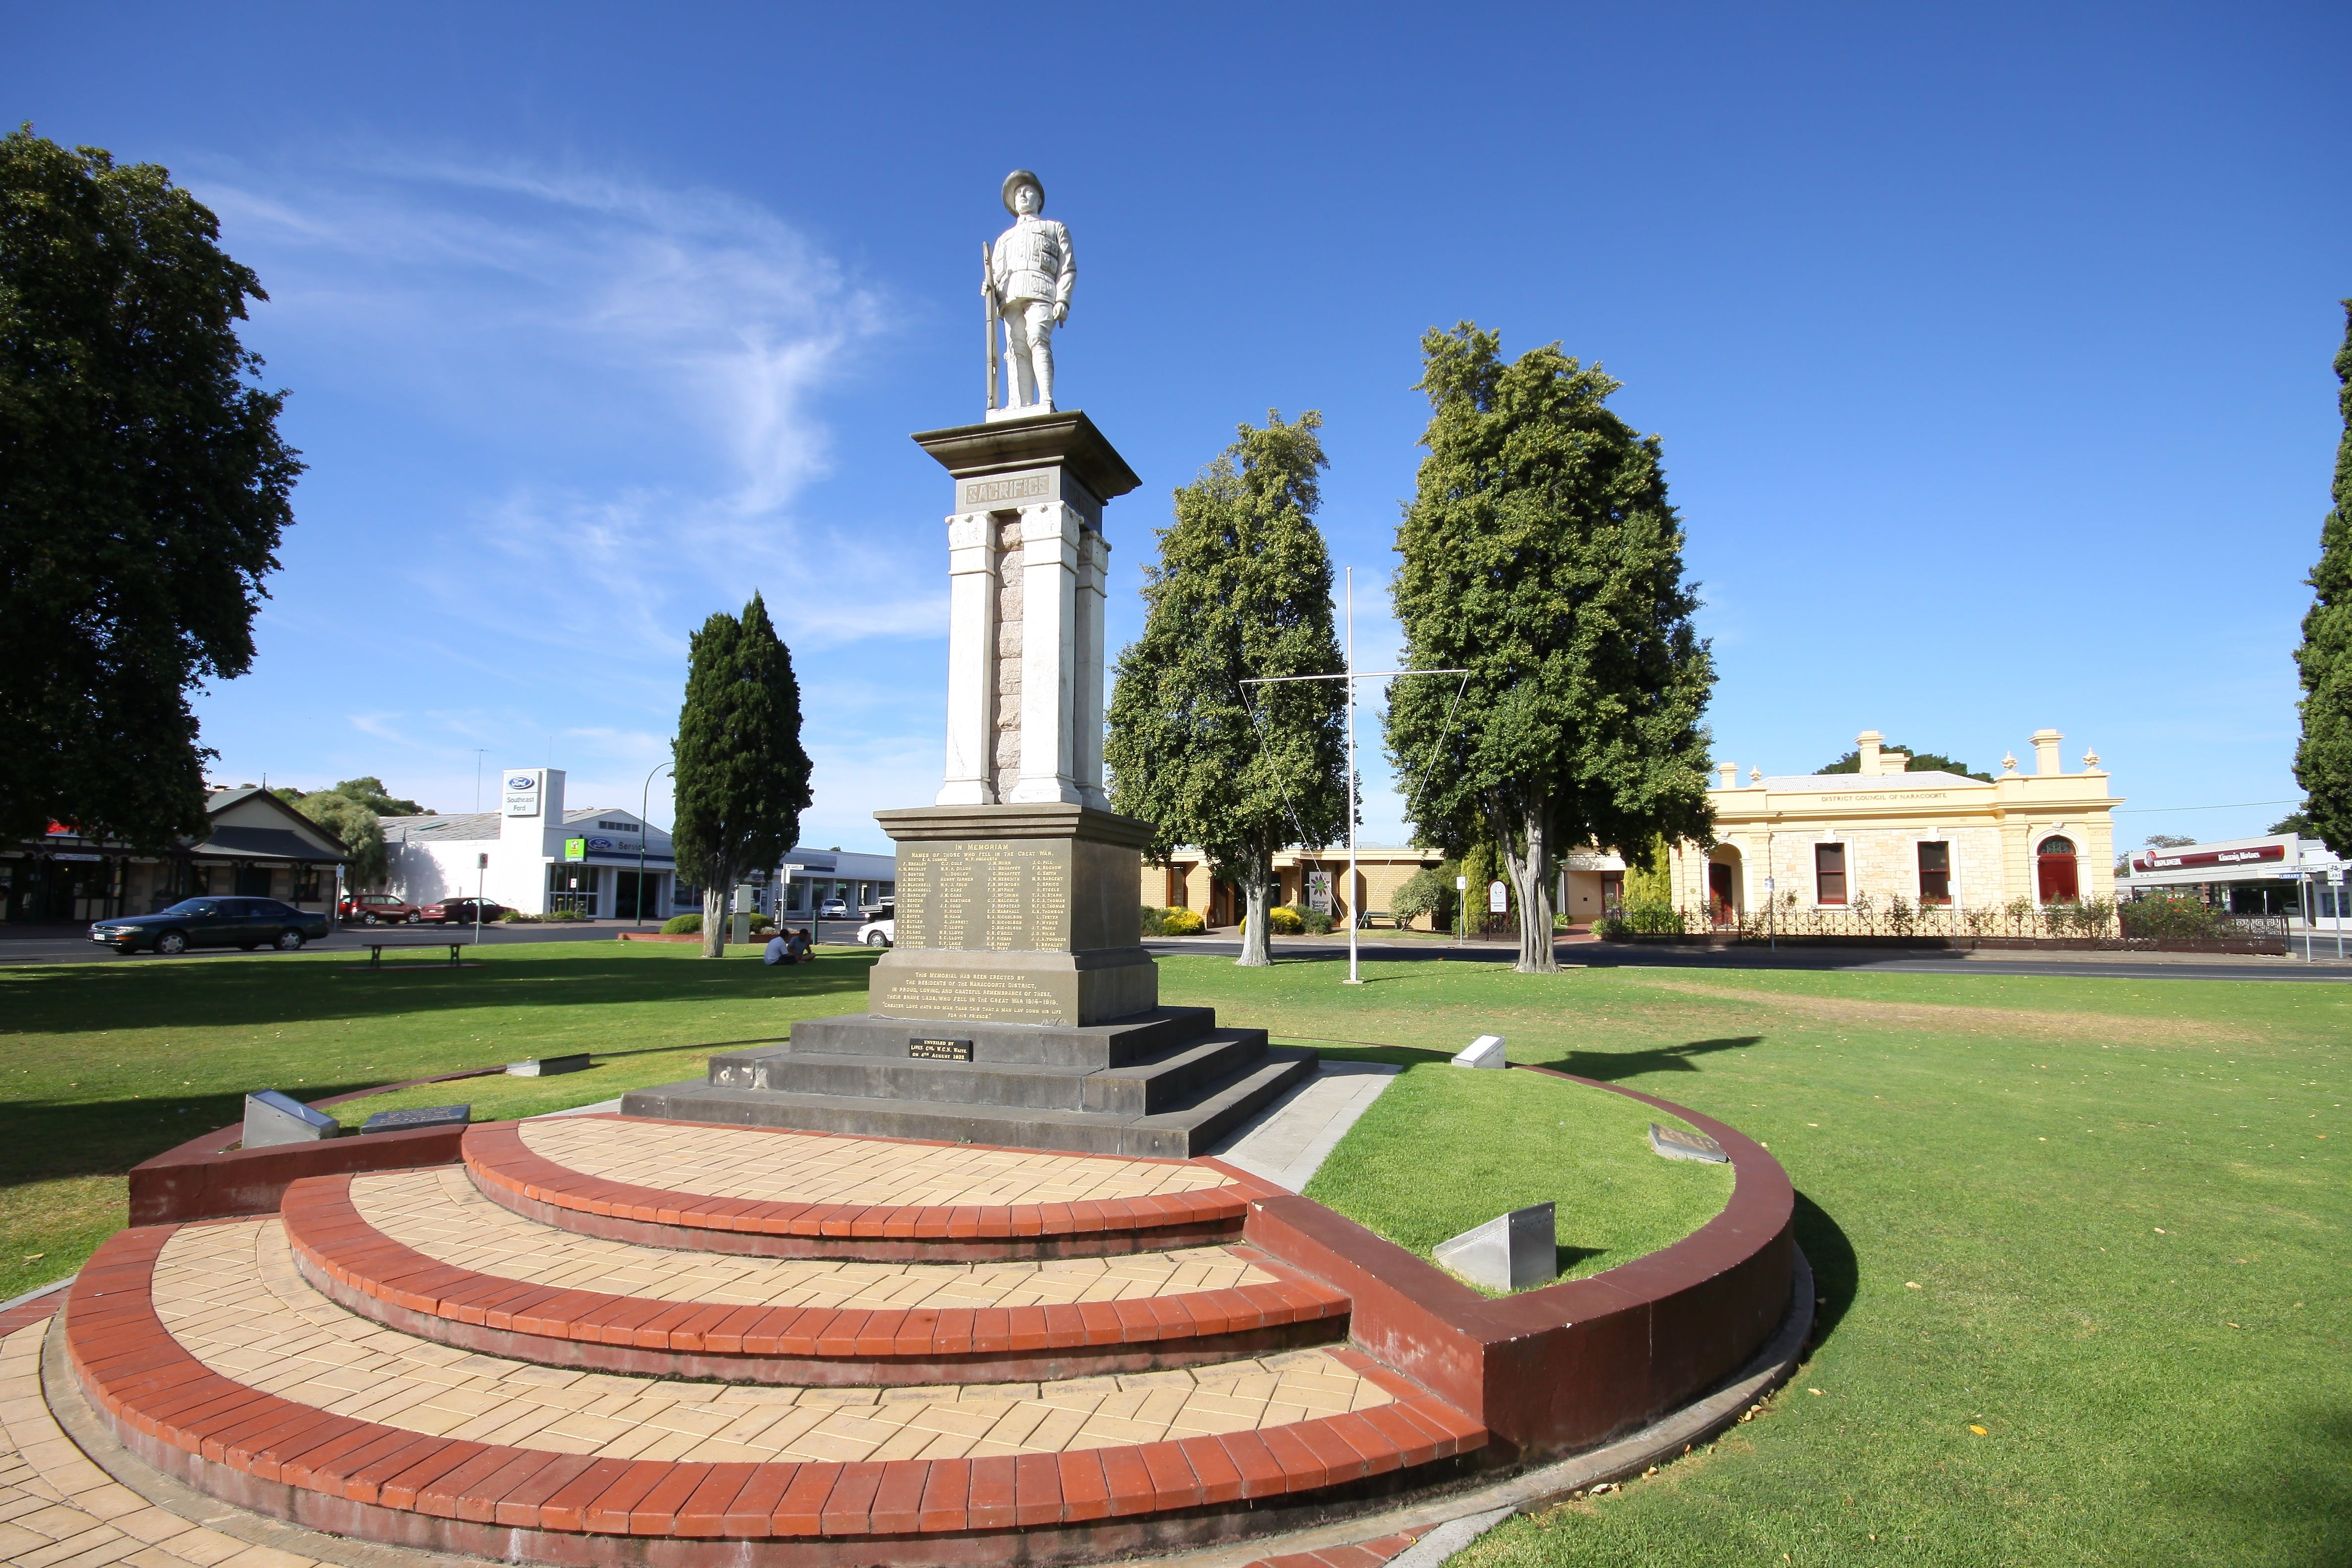 Naracoorte Town Square